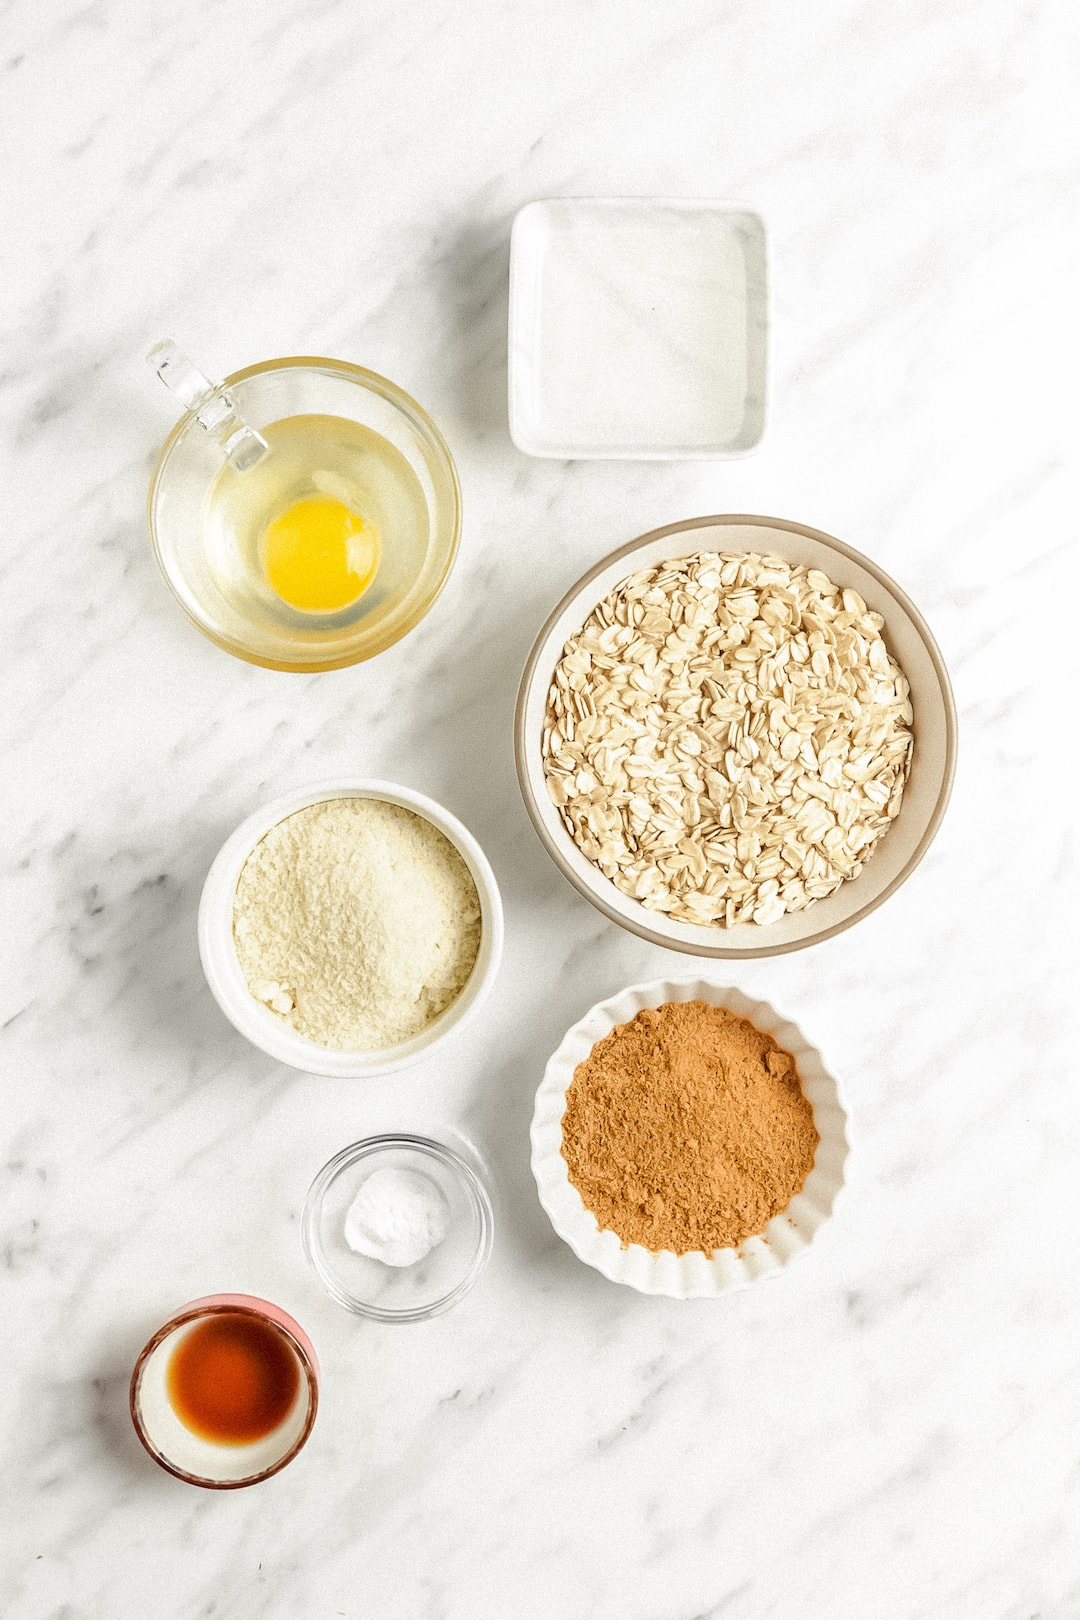 Ingredients for Soft Healthy Almond Flour Oatmeal Cookies